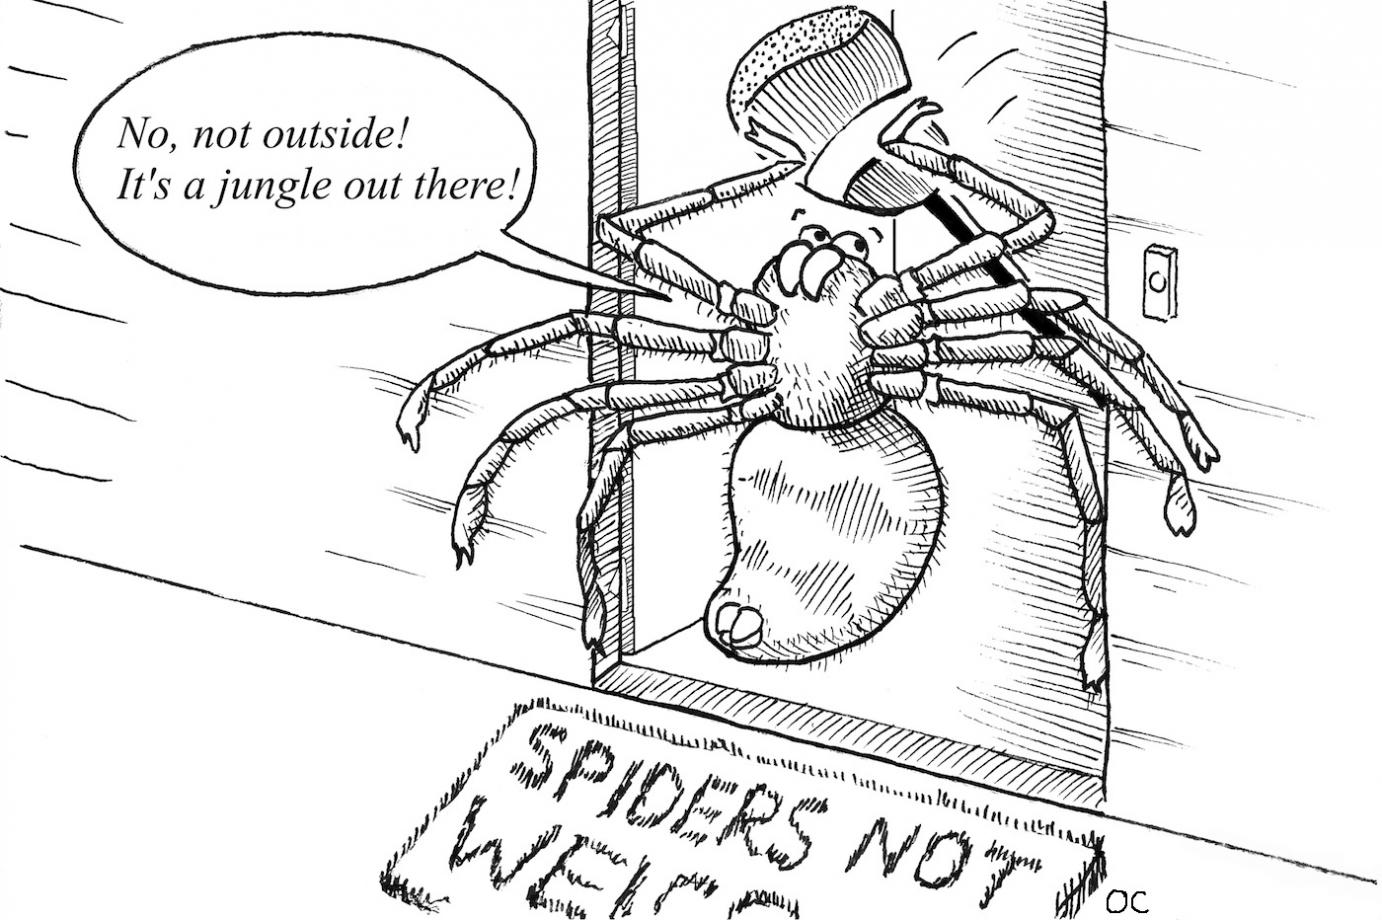 A comic of a spider banging on a front door